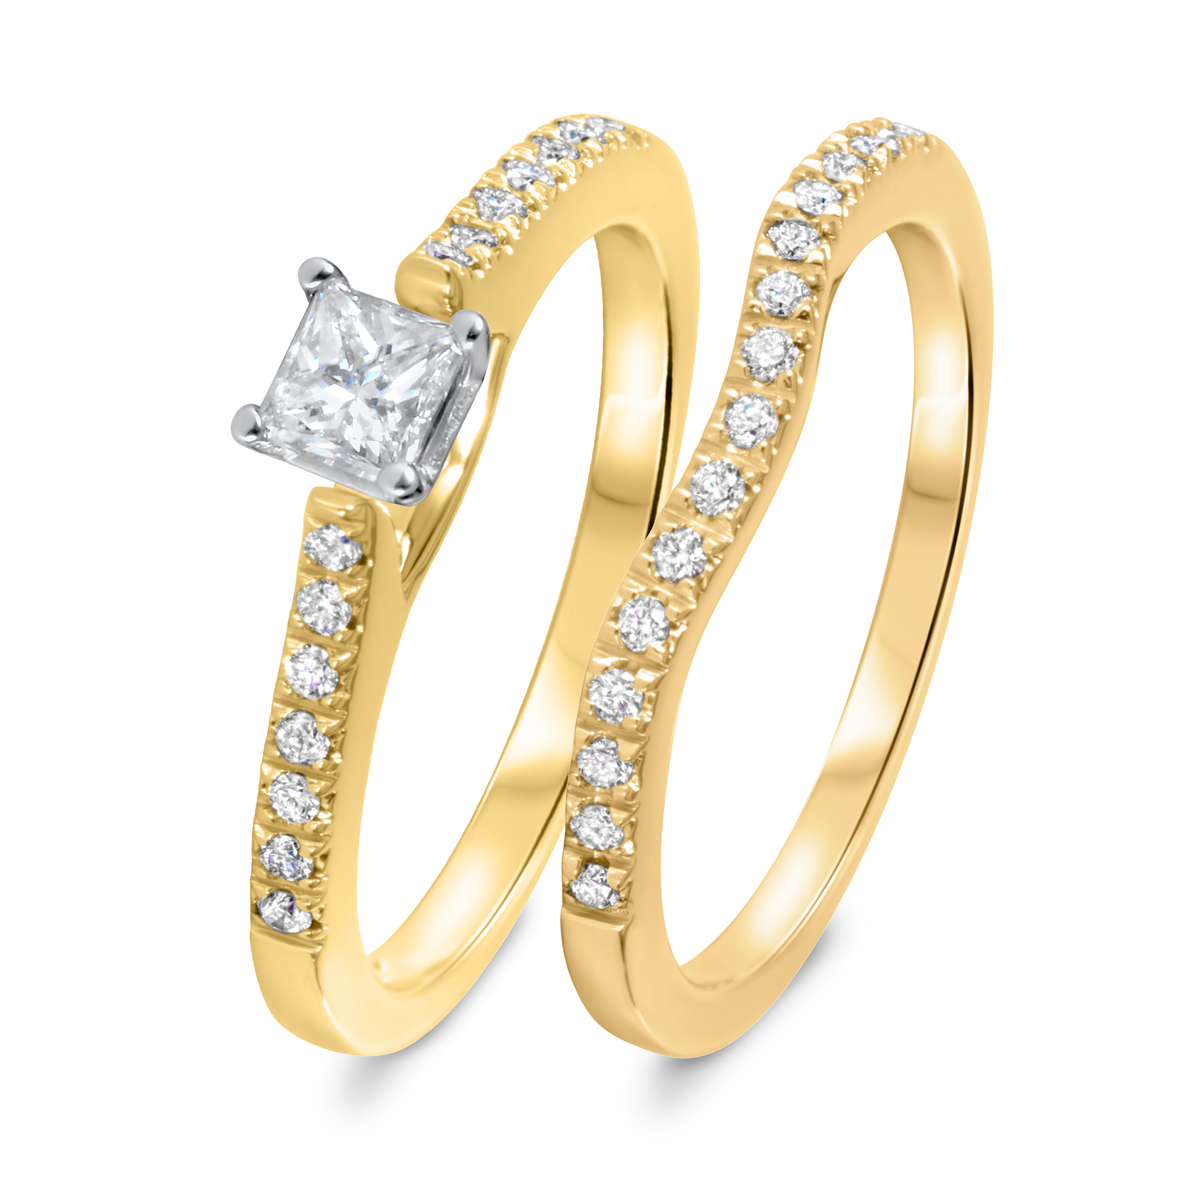 1/2 CT. T.W. Diamond Women's Bridal Wedding Ring Set 10K Yellow Gold